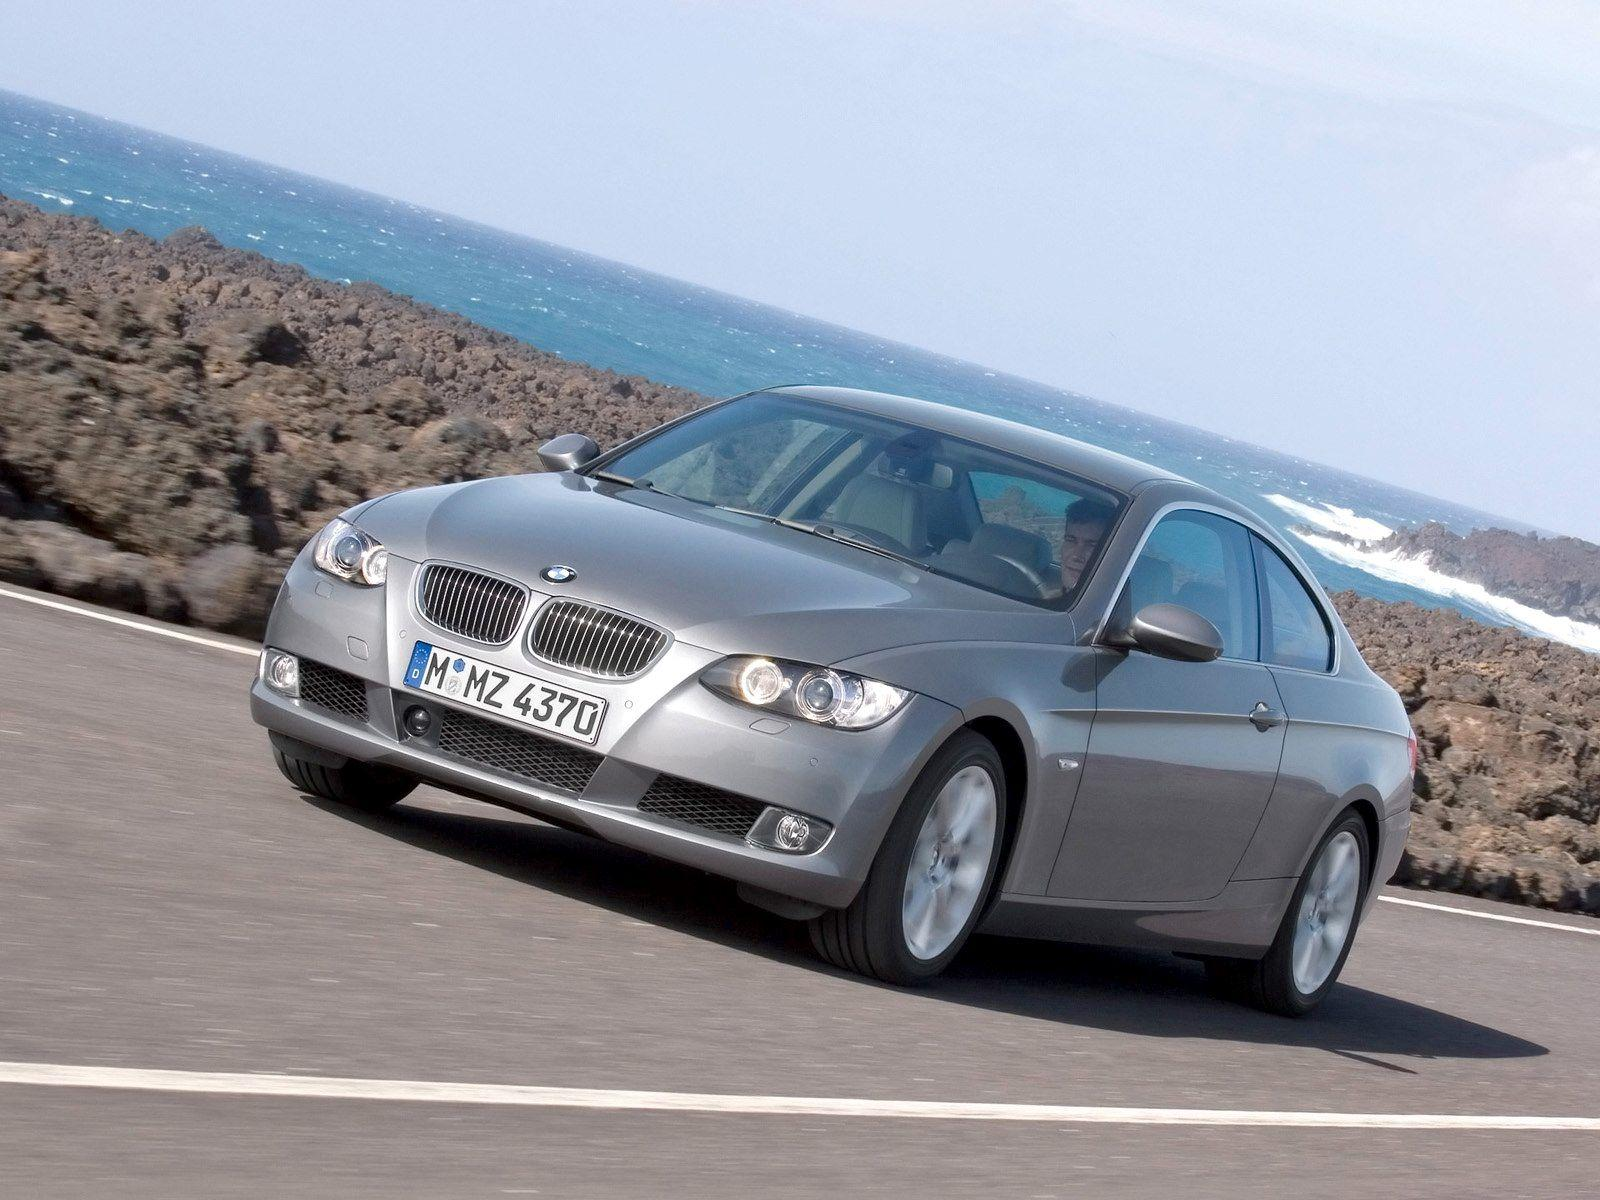 2007 BMW 335i Coupe Wallpaper 03 - 1600x1200